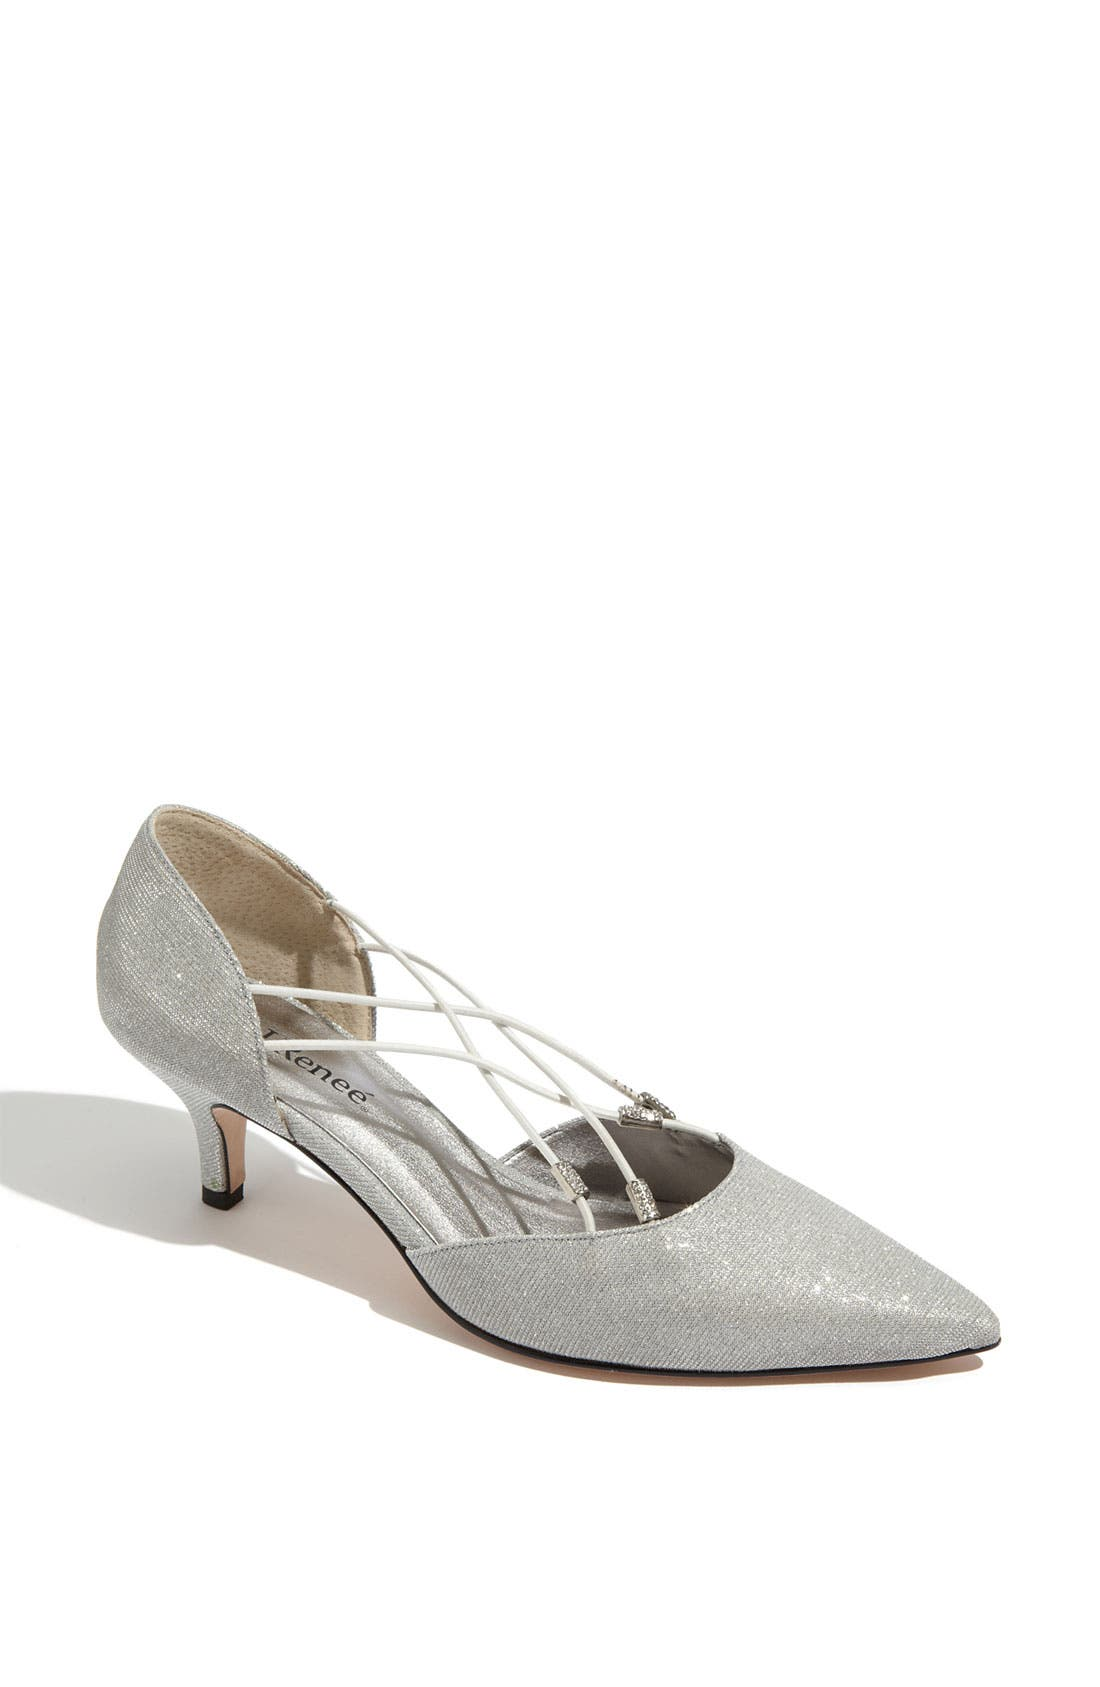 Main Image - J RENEE AFFAIR PUMP